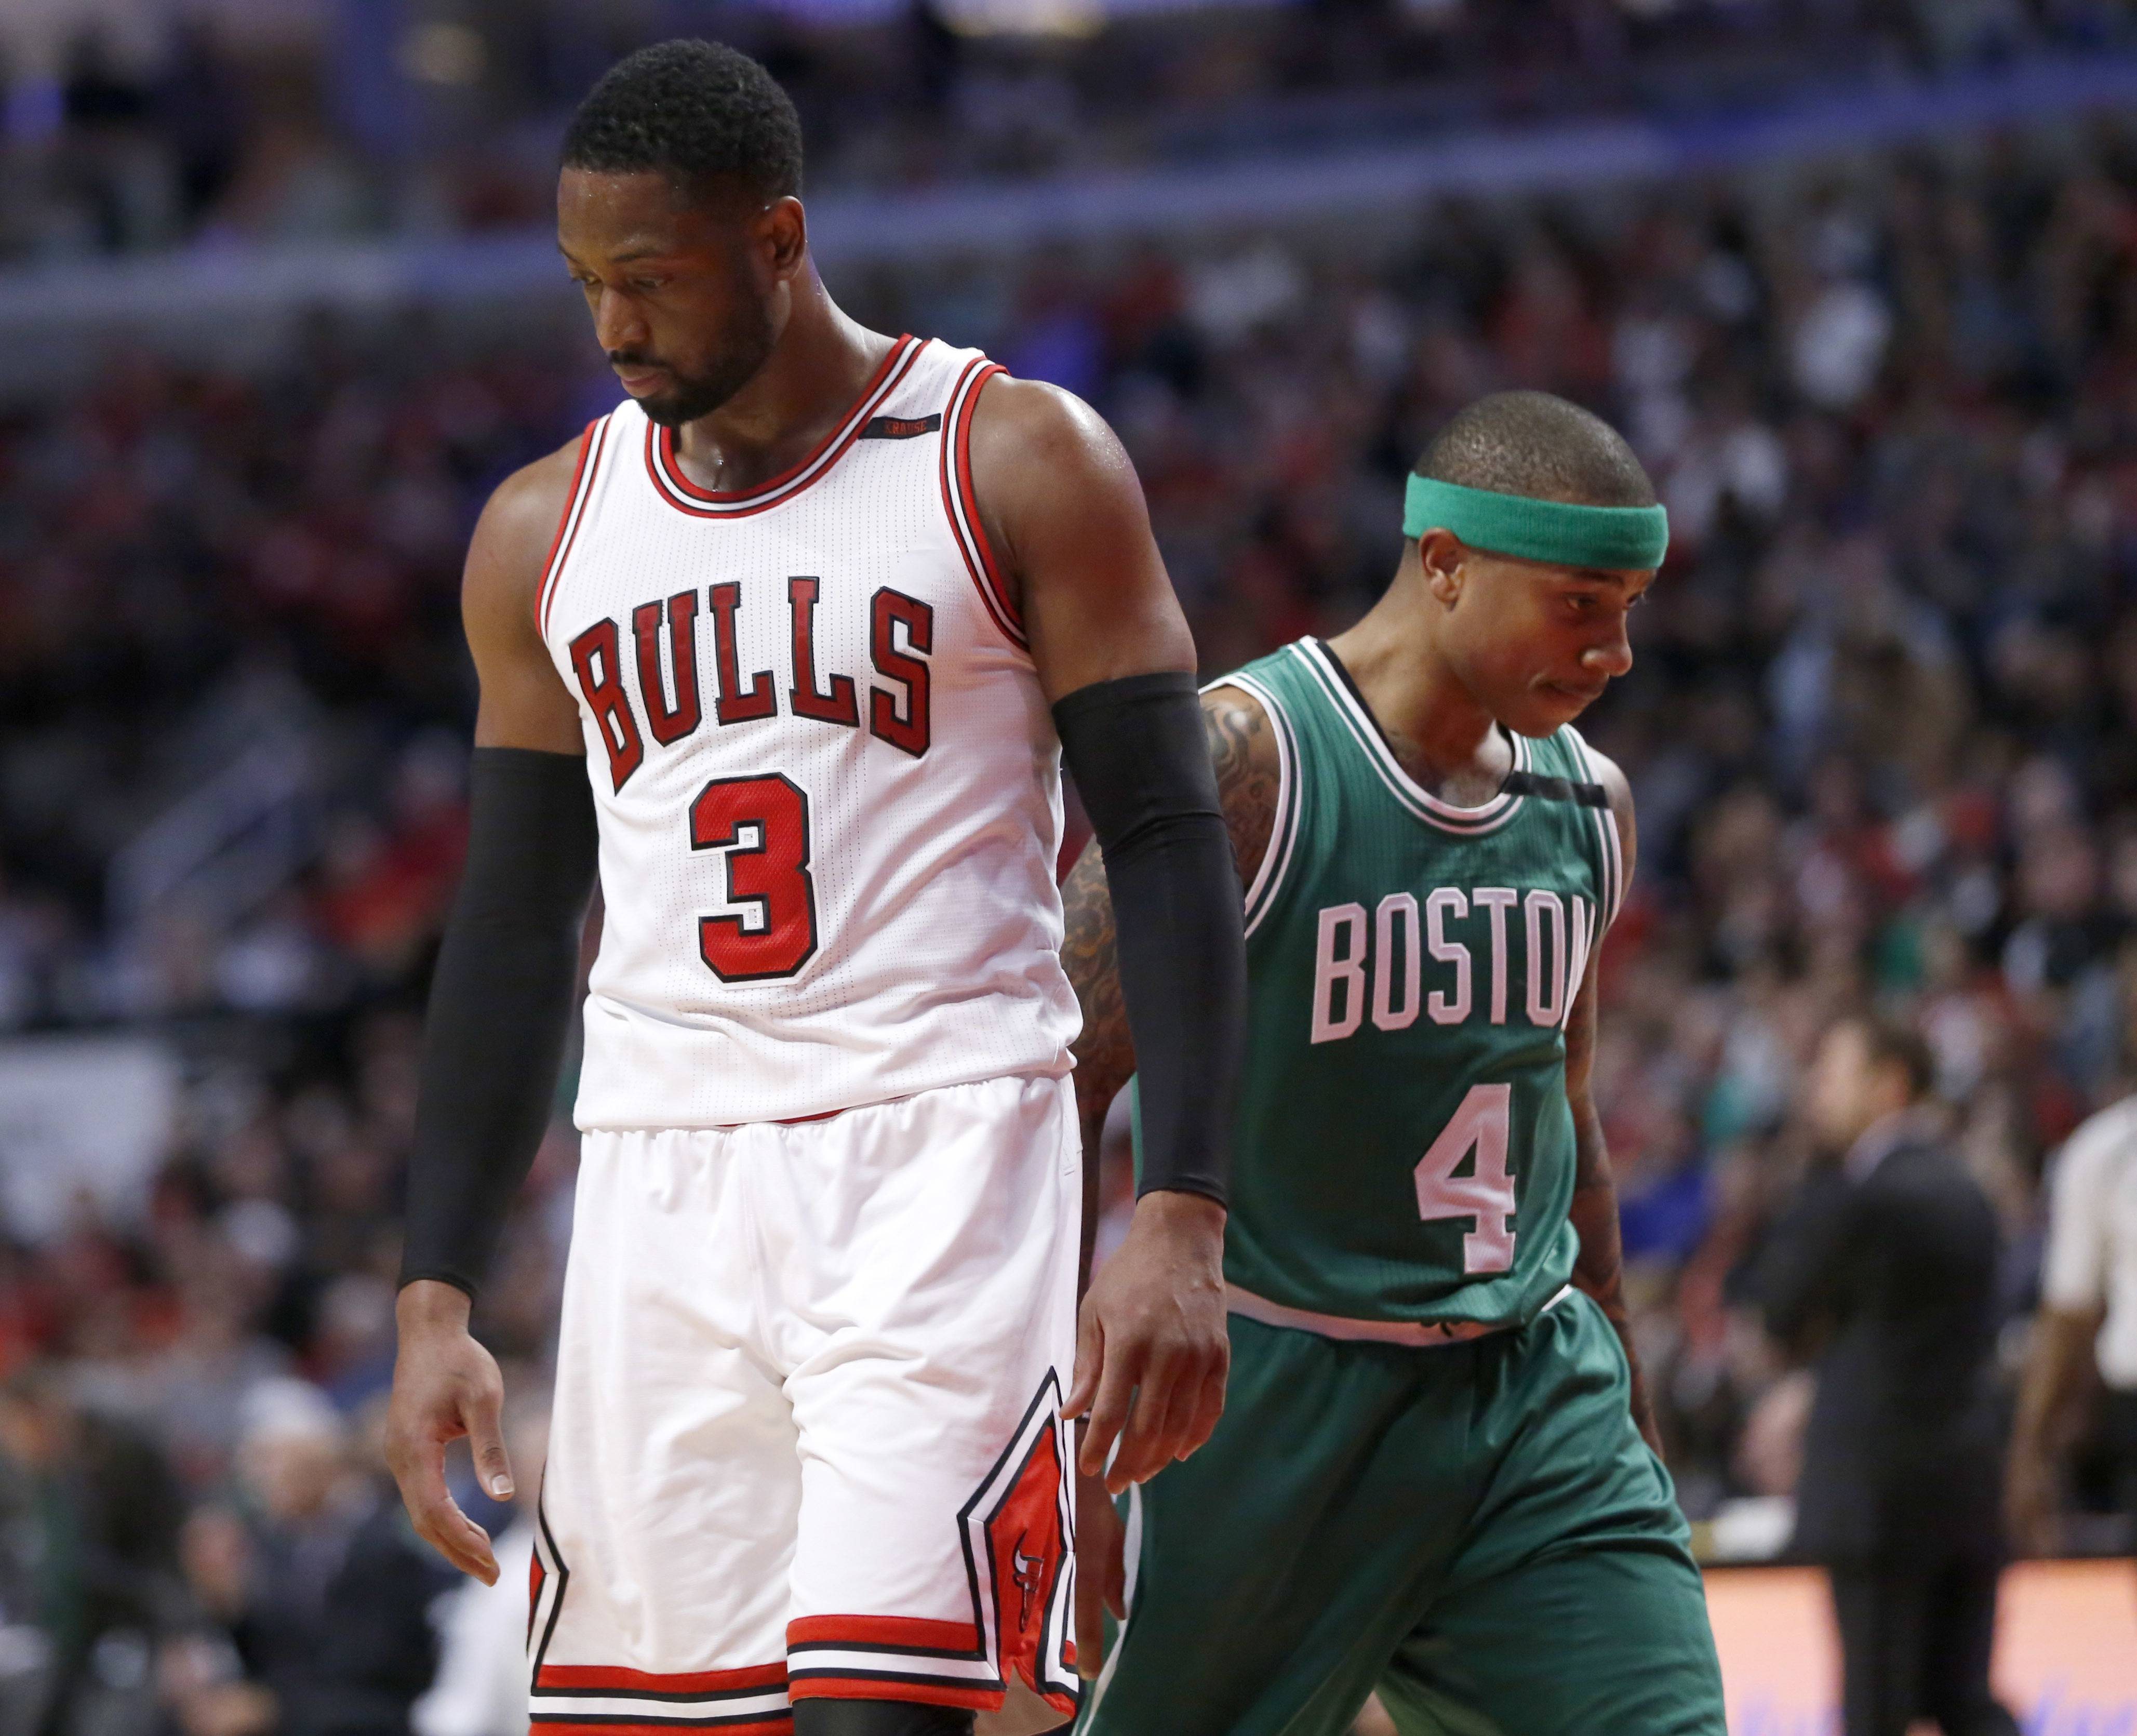 Chicago Bulls' Dwyane Wade (3) and Boston Celtics' Isaiah Thomas pass each other during the second half in Game 4 of an NBA basketball first-round playoff series in Chicago, Sunday, April 23, 2017. The Celtics won 104-95. (AP Photo/Charles Rex Arbogast)